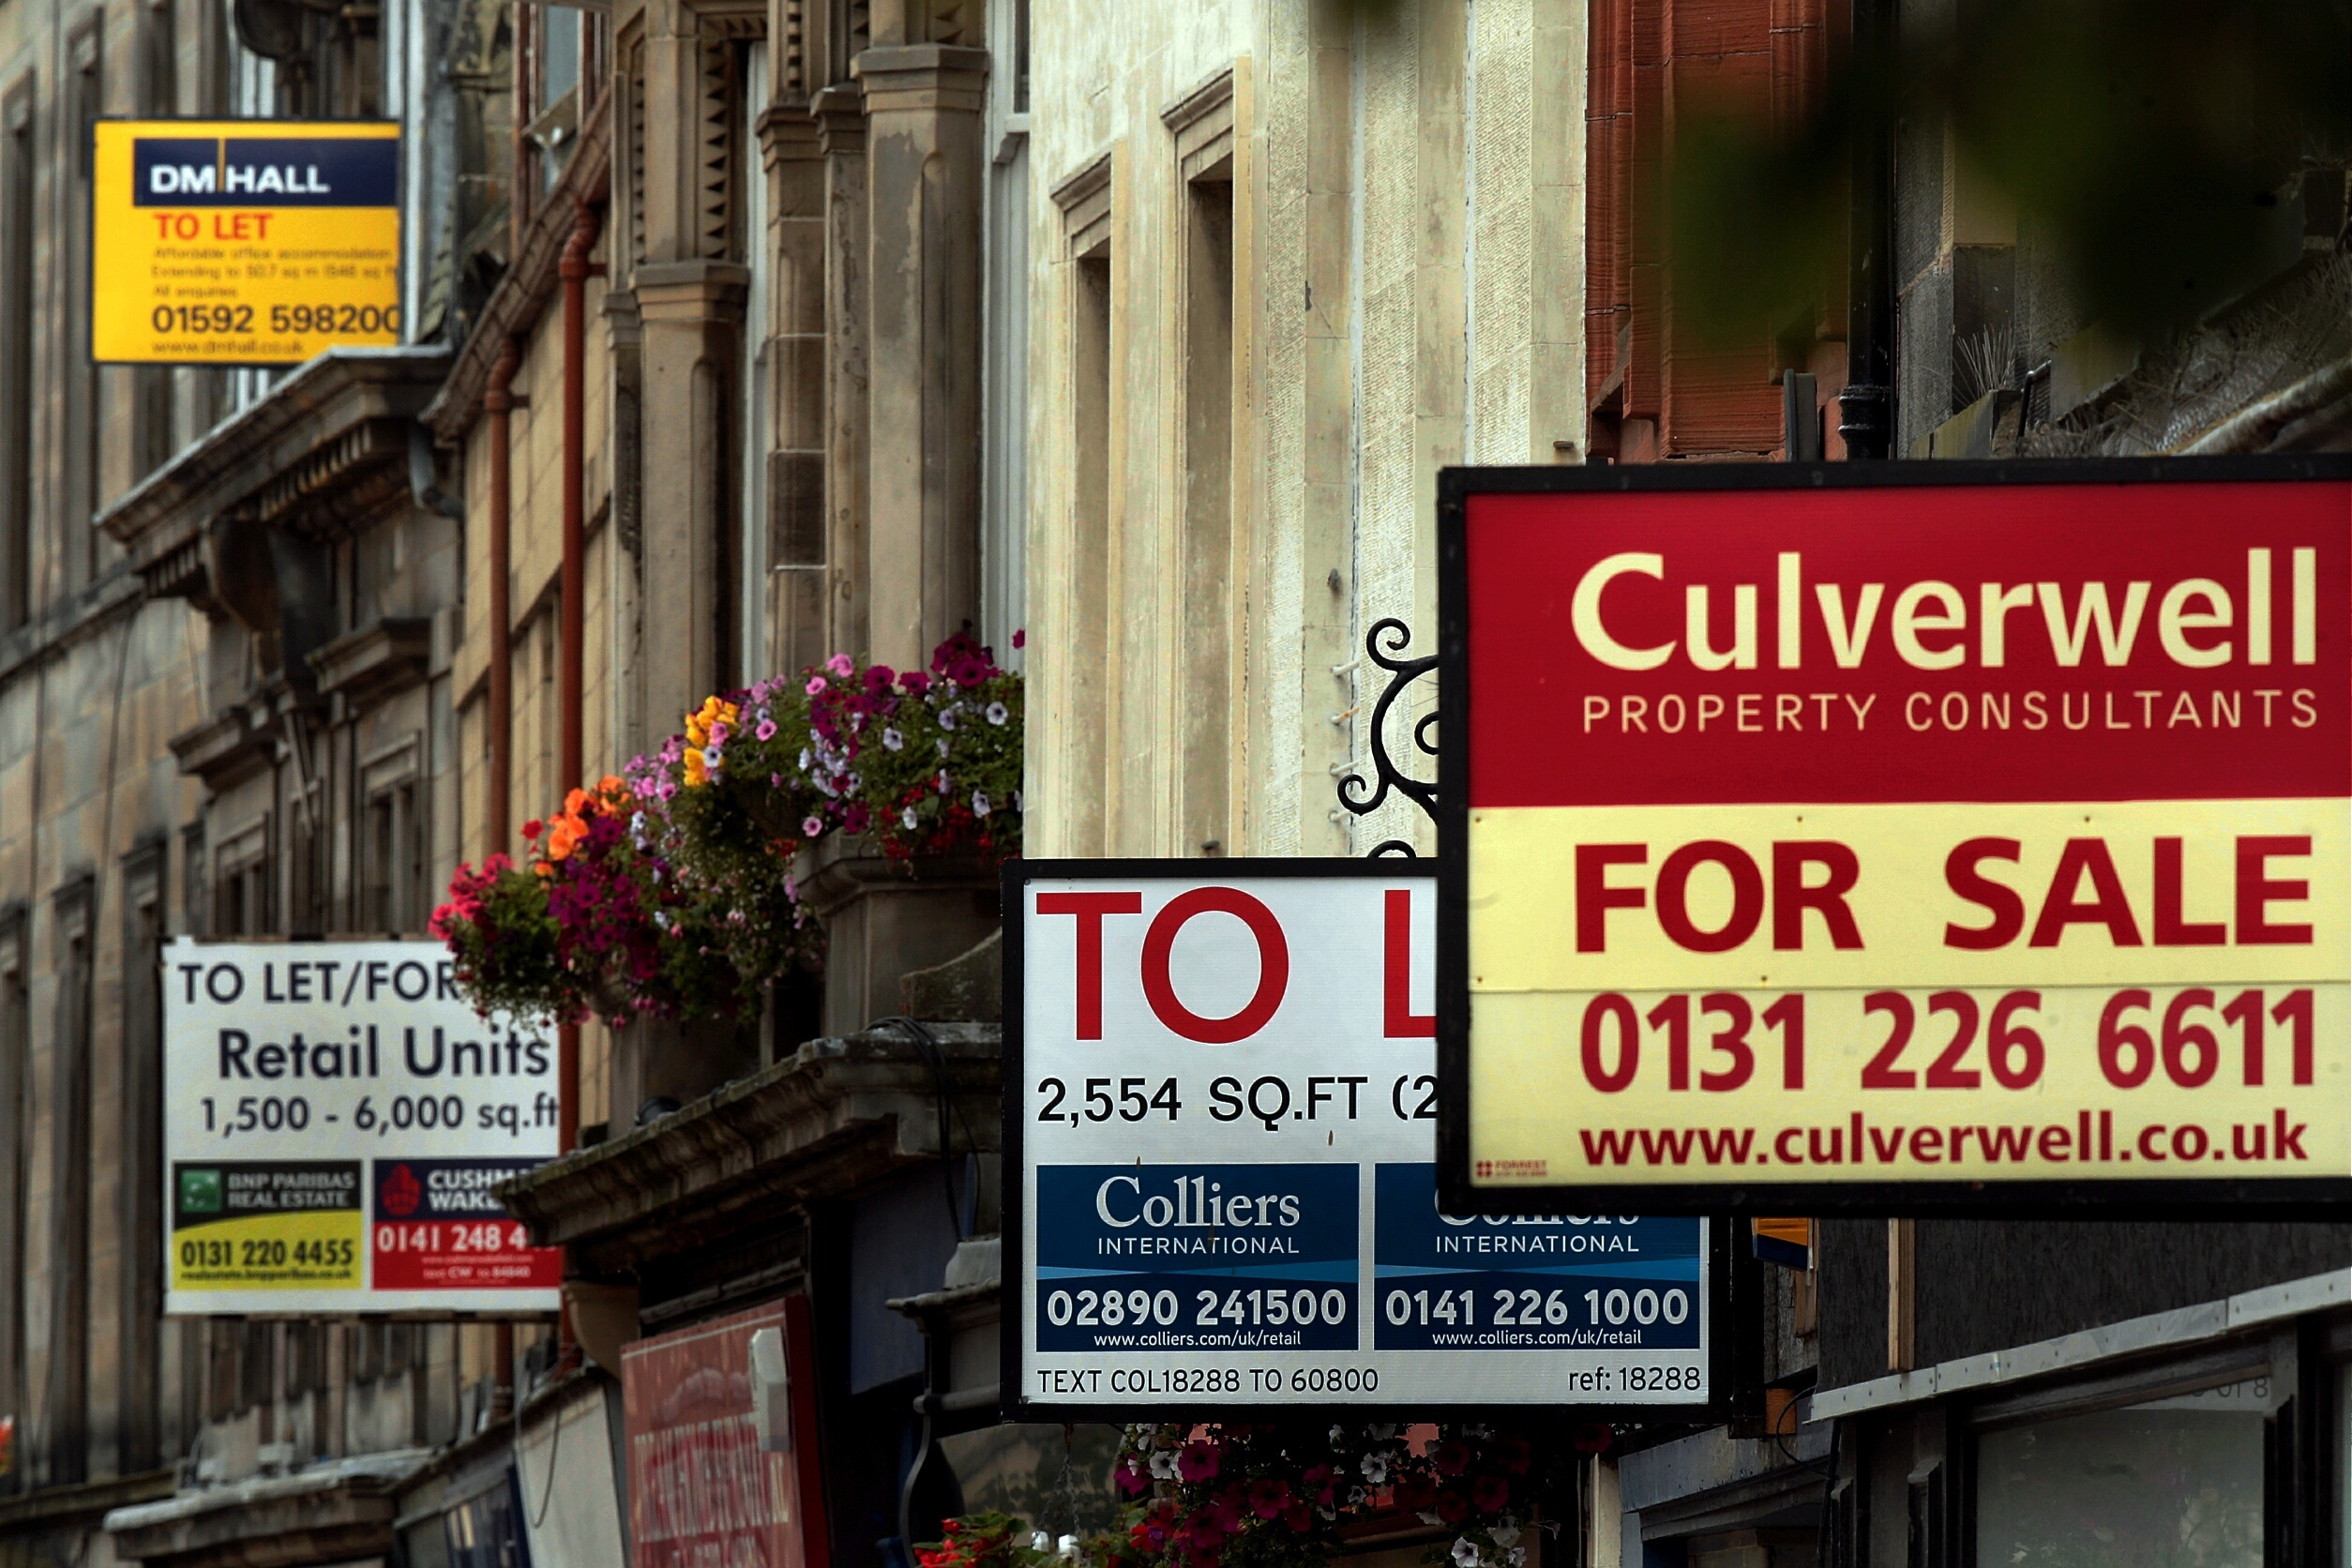 To Let and For Sale signs in Kirkcaldy High Street in 2013